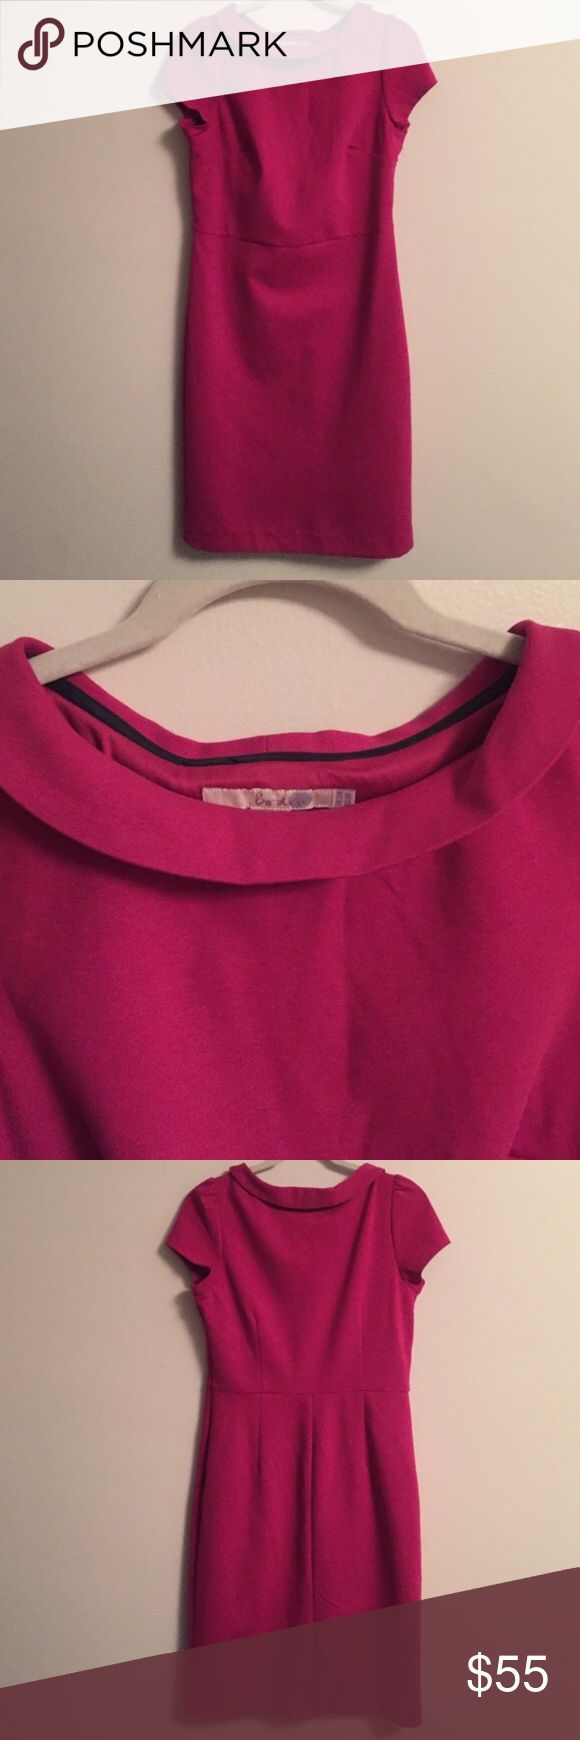 Bright pink Boden dress US 8R NWOT! Gorgeous dress, reposhing- never worn, only tried on (sadly a but tight on me). I cut the stitch that closed the back slit. Cap sleeves, side zip, fully lined. Boden Dresses Midi